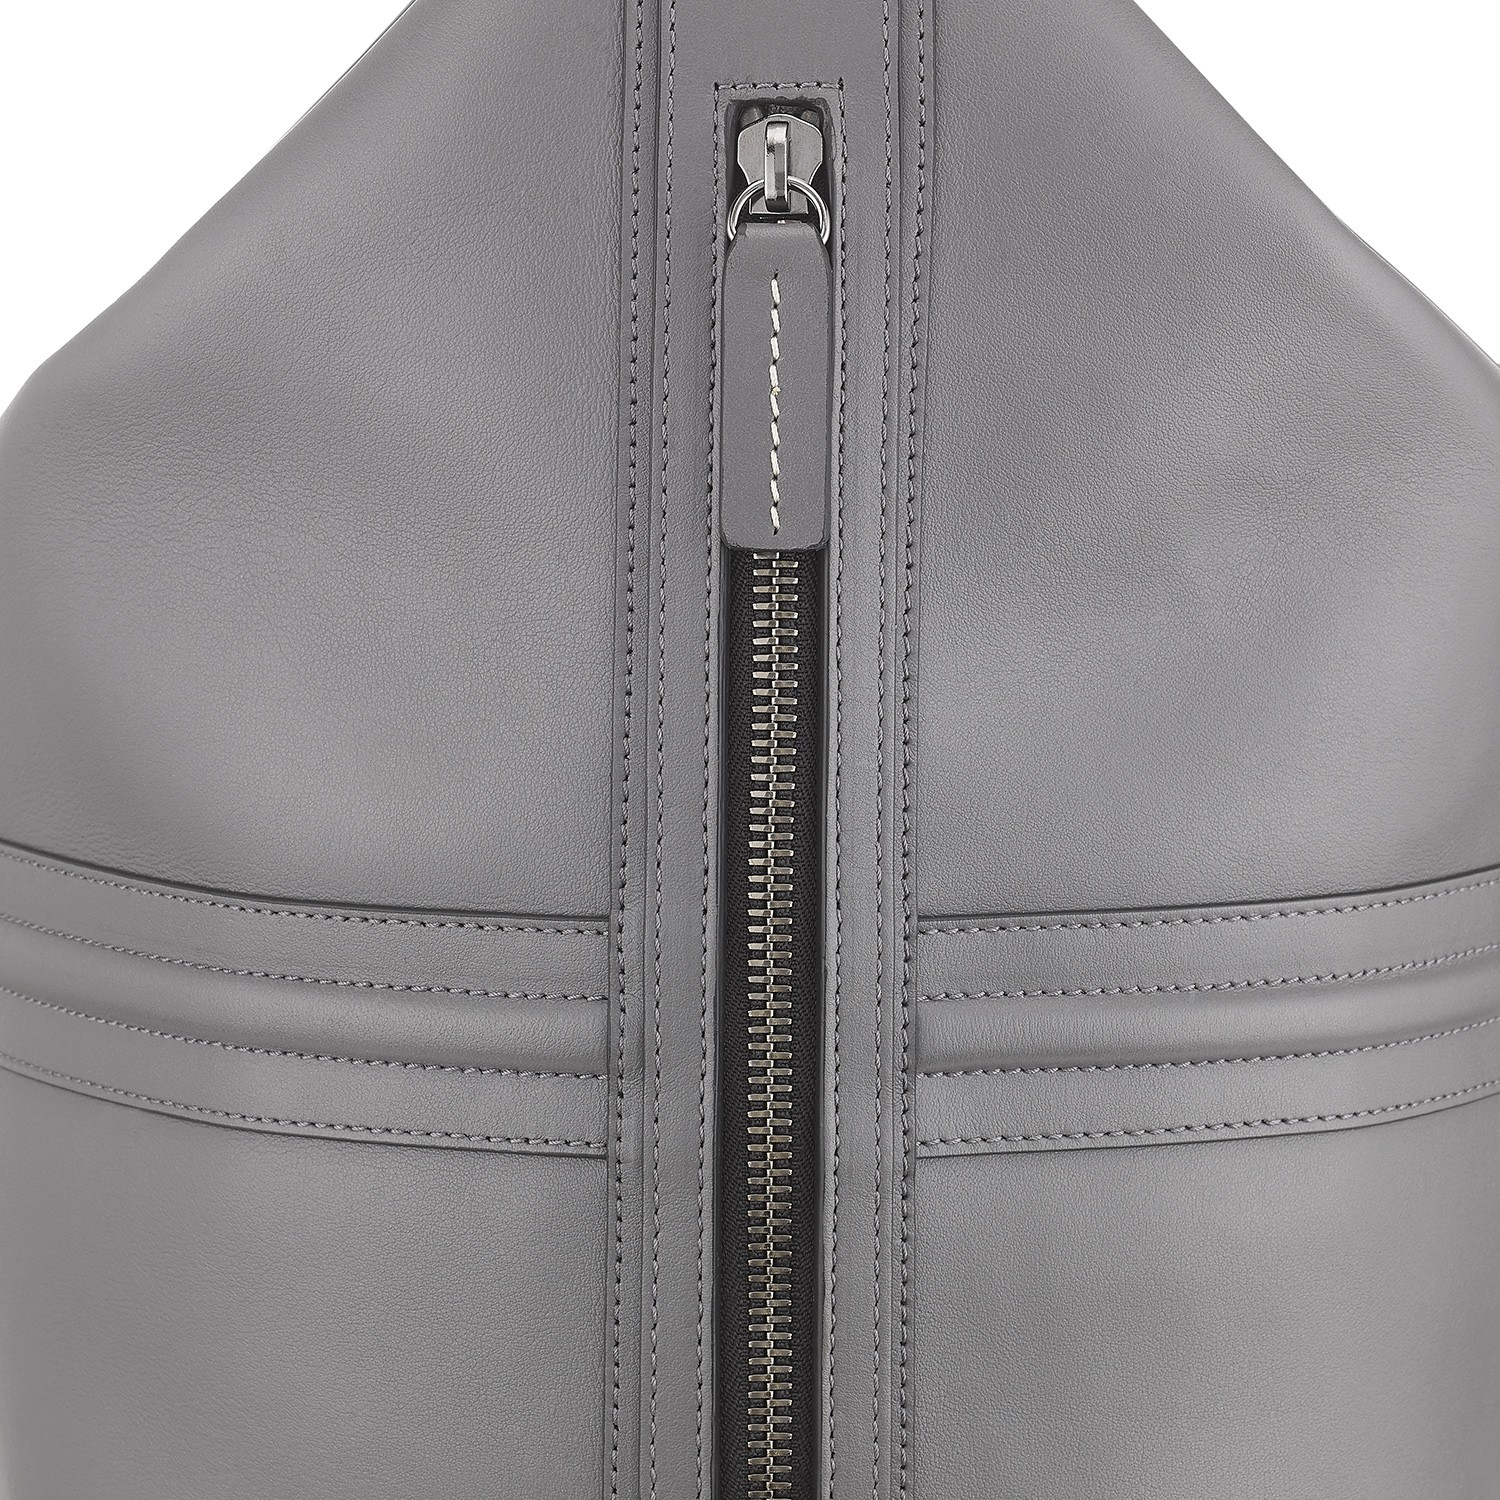 G36 Unisex Hobo Bag Shark / Smoke Grey Close